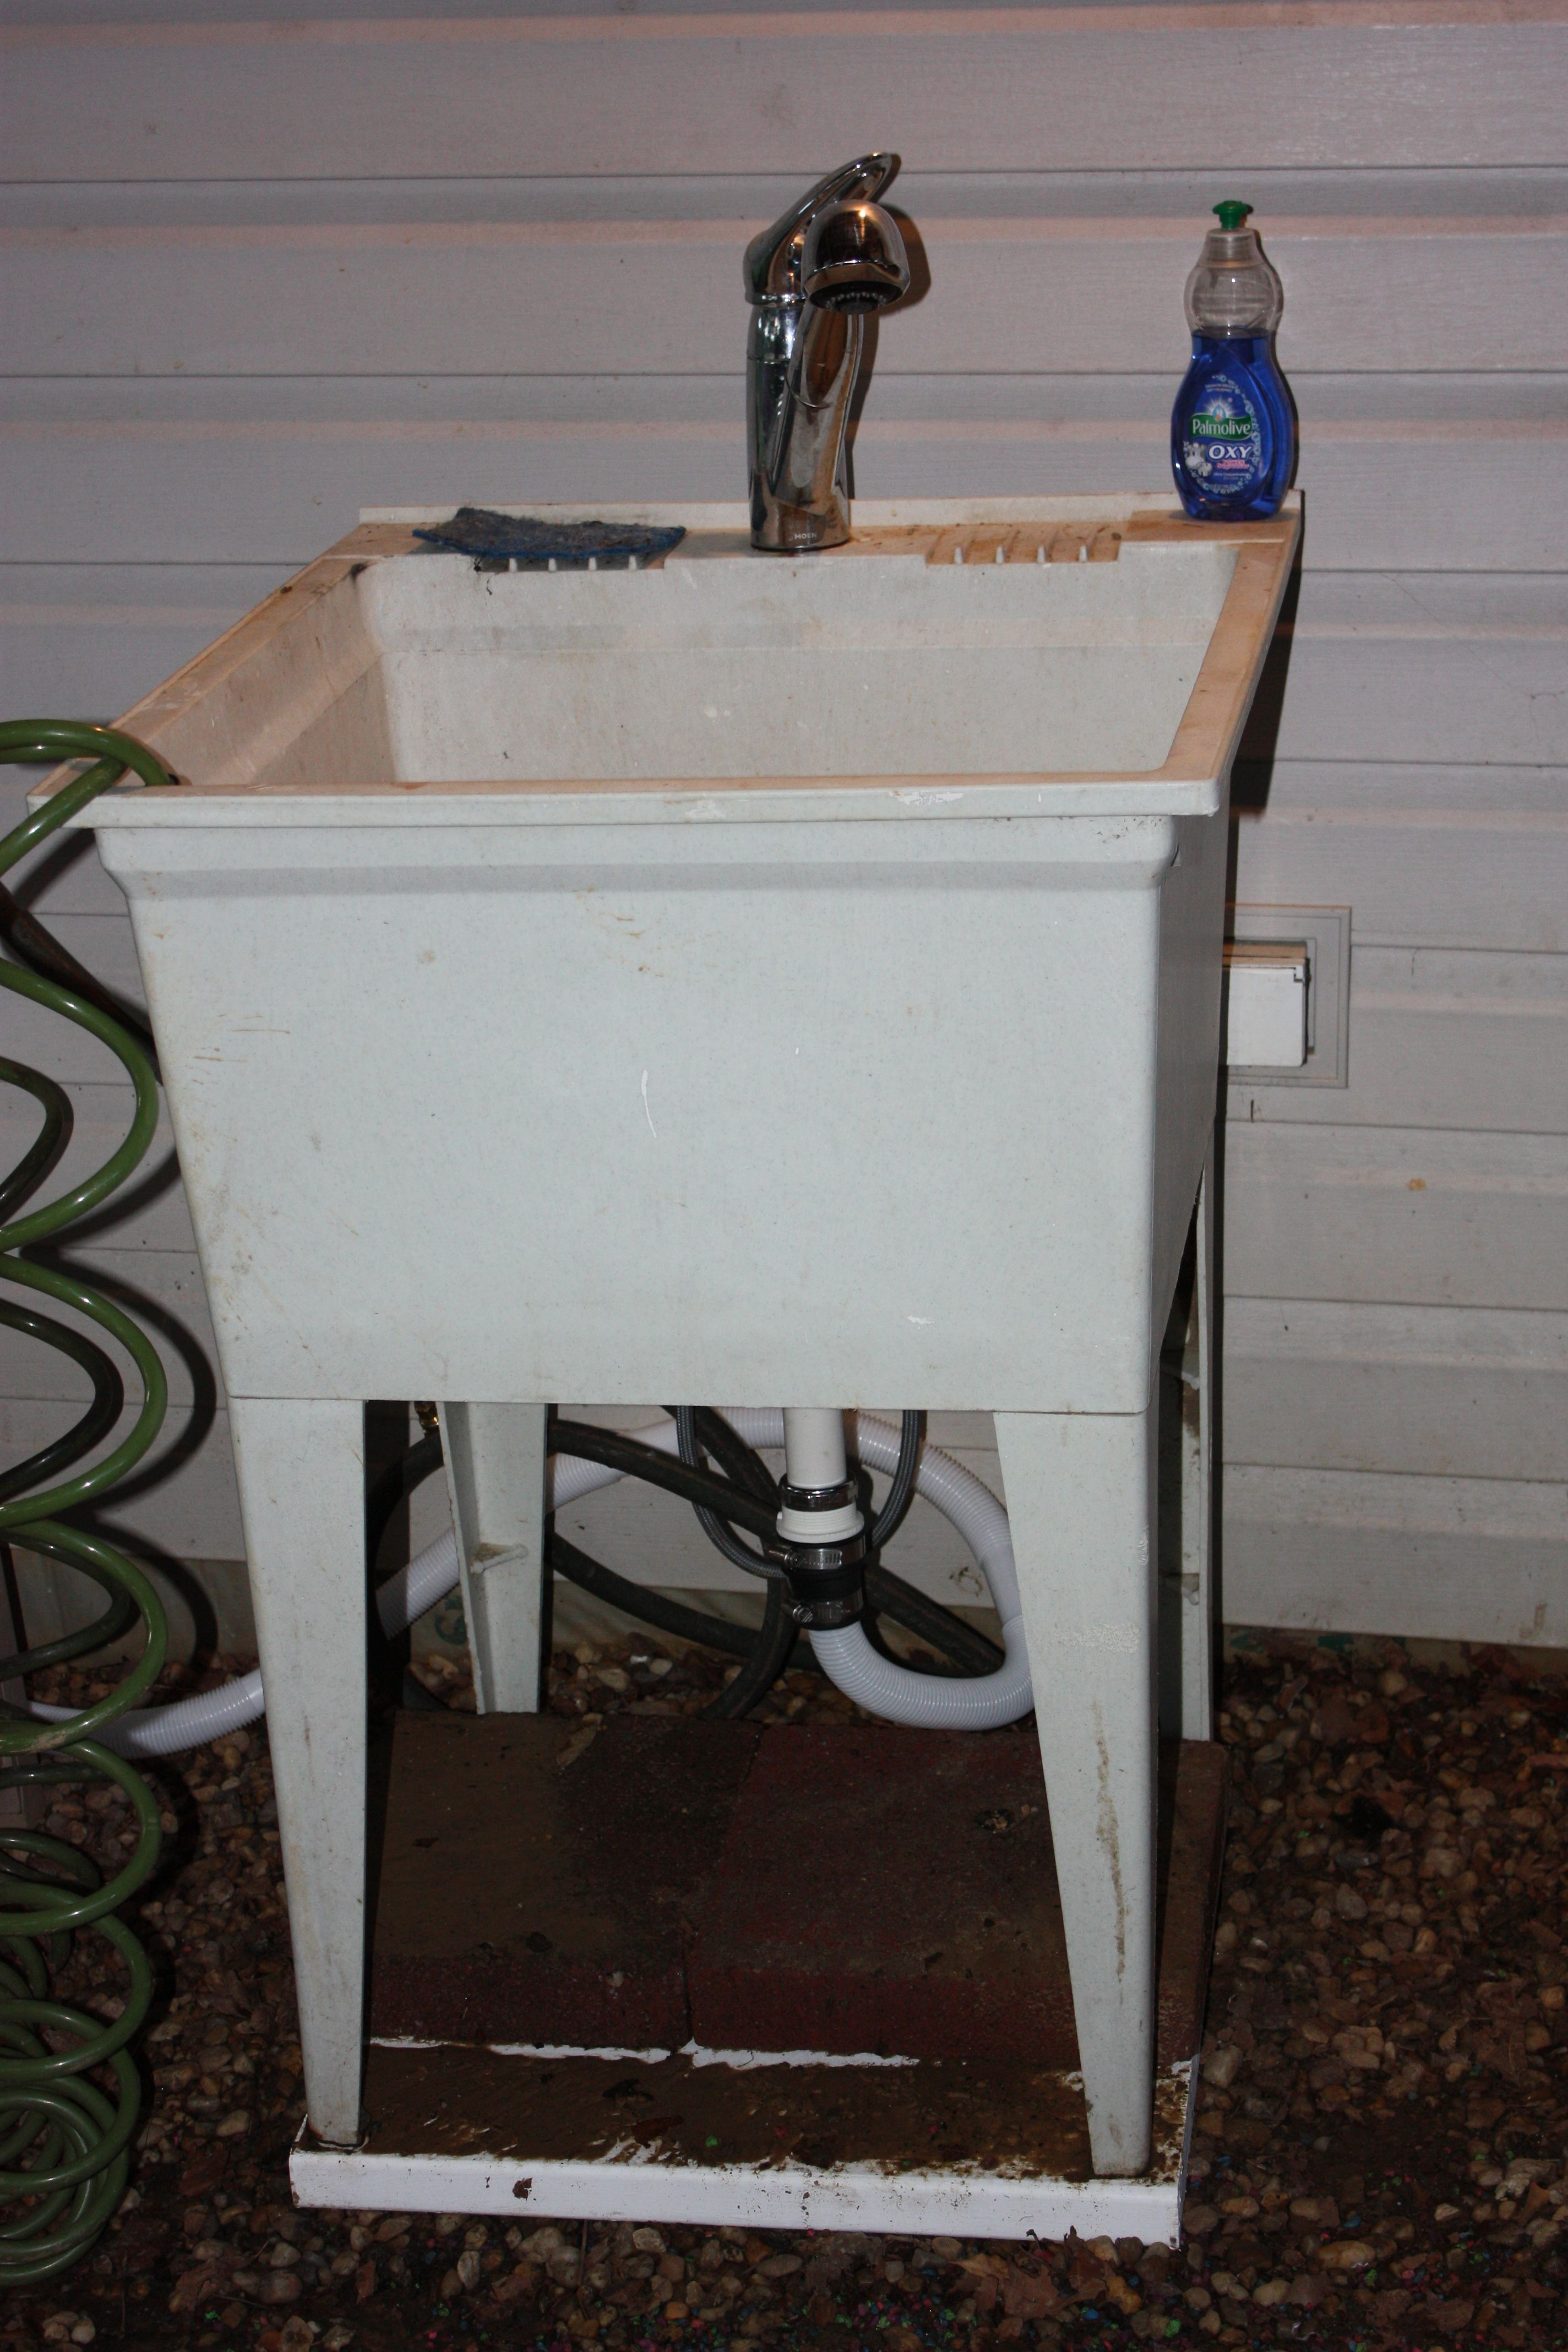 """$50 Outdoor Sink with pullout faucet. Found the sink being thrown out on the street.  Bought a Moen pullout faucet for $35 on Craigslist, a few plumbing parts to connect my hose to the cold water input of the sink, a 1 1/8"""" bilge pump hose direct to my gutter - sink installed!  Amazing how many times we use this outdoor sink!"""